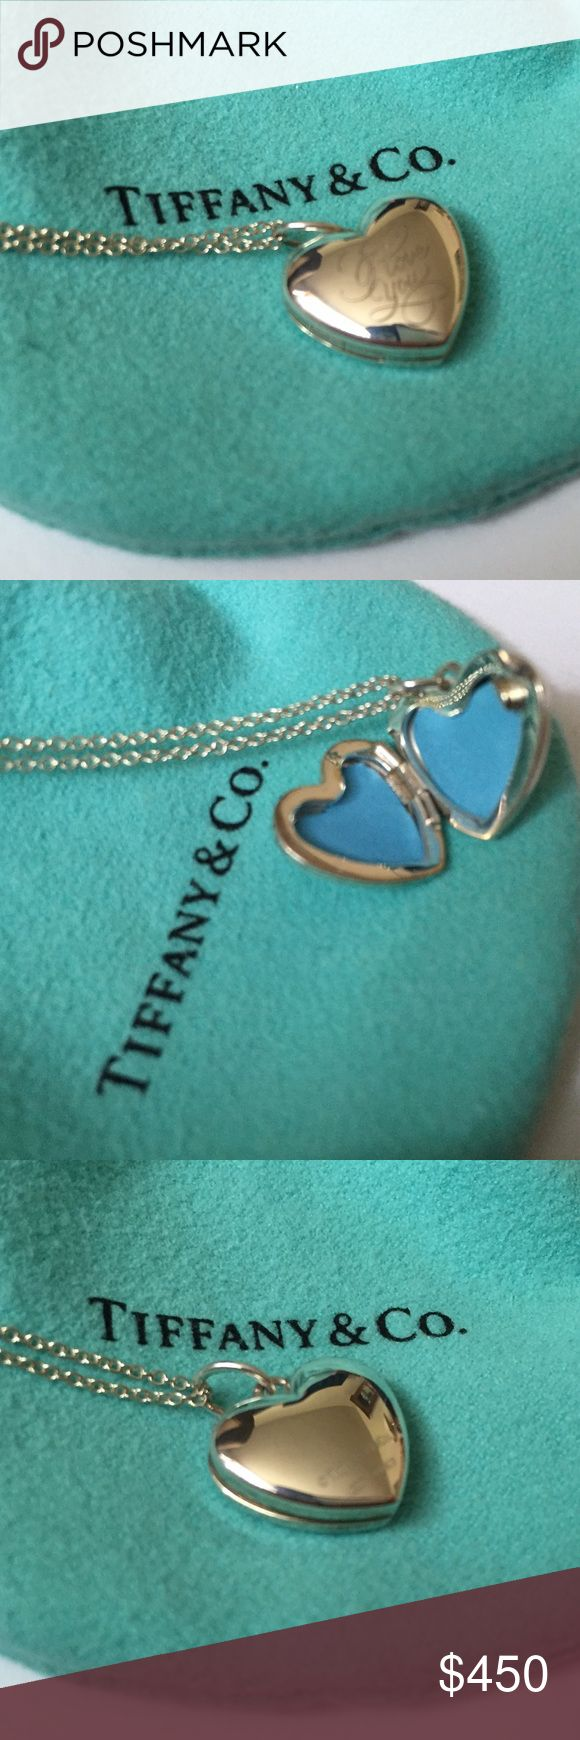 "NEVER WORN - Tiffany - Heart Shaped Locket & Chain Tiffany - ""I Love You"" Heart Shaped Locket. NEVER WORN. In GREAT condition. The 18 inch Tiffany's chain is also included, as well as the pouch, box, and white bow! Tiffany & Co. Jewelry Necklaces"